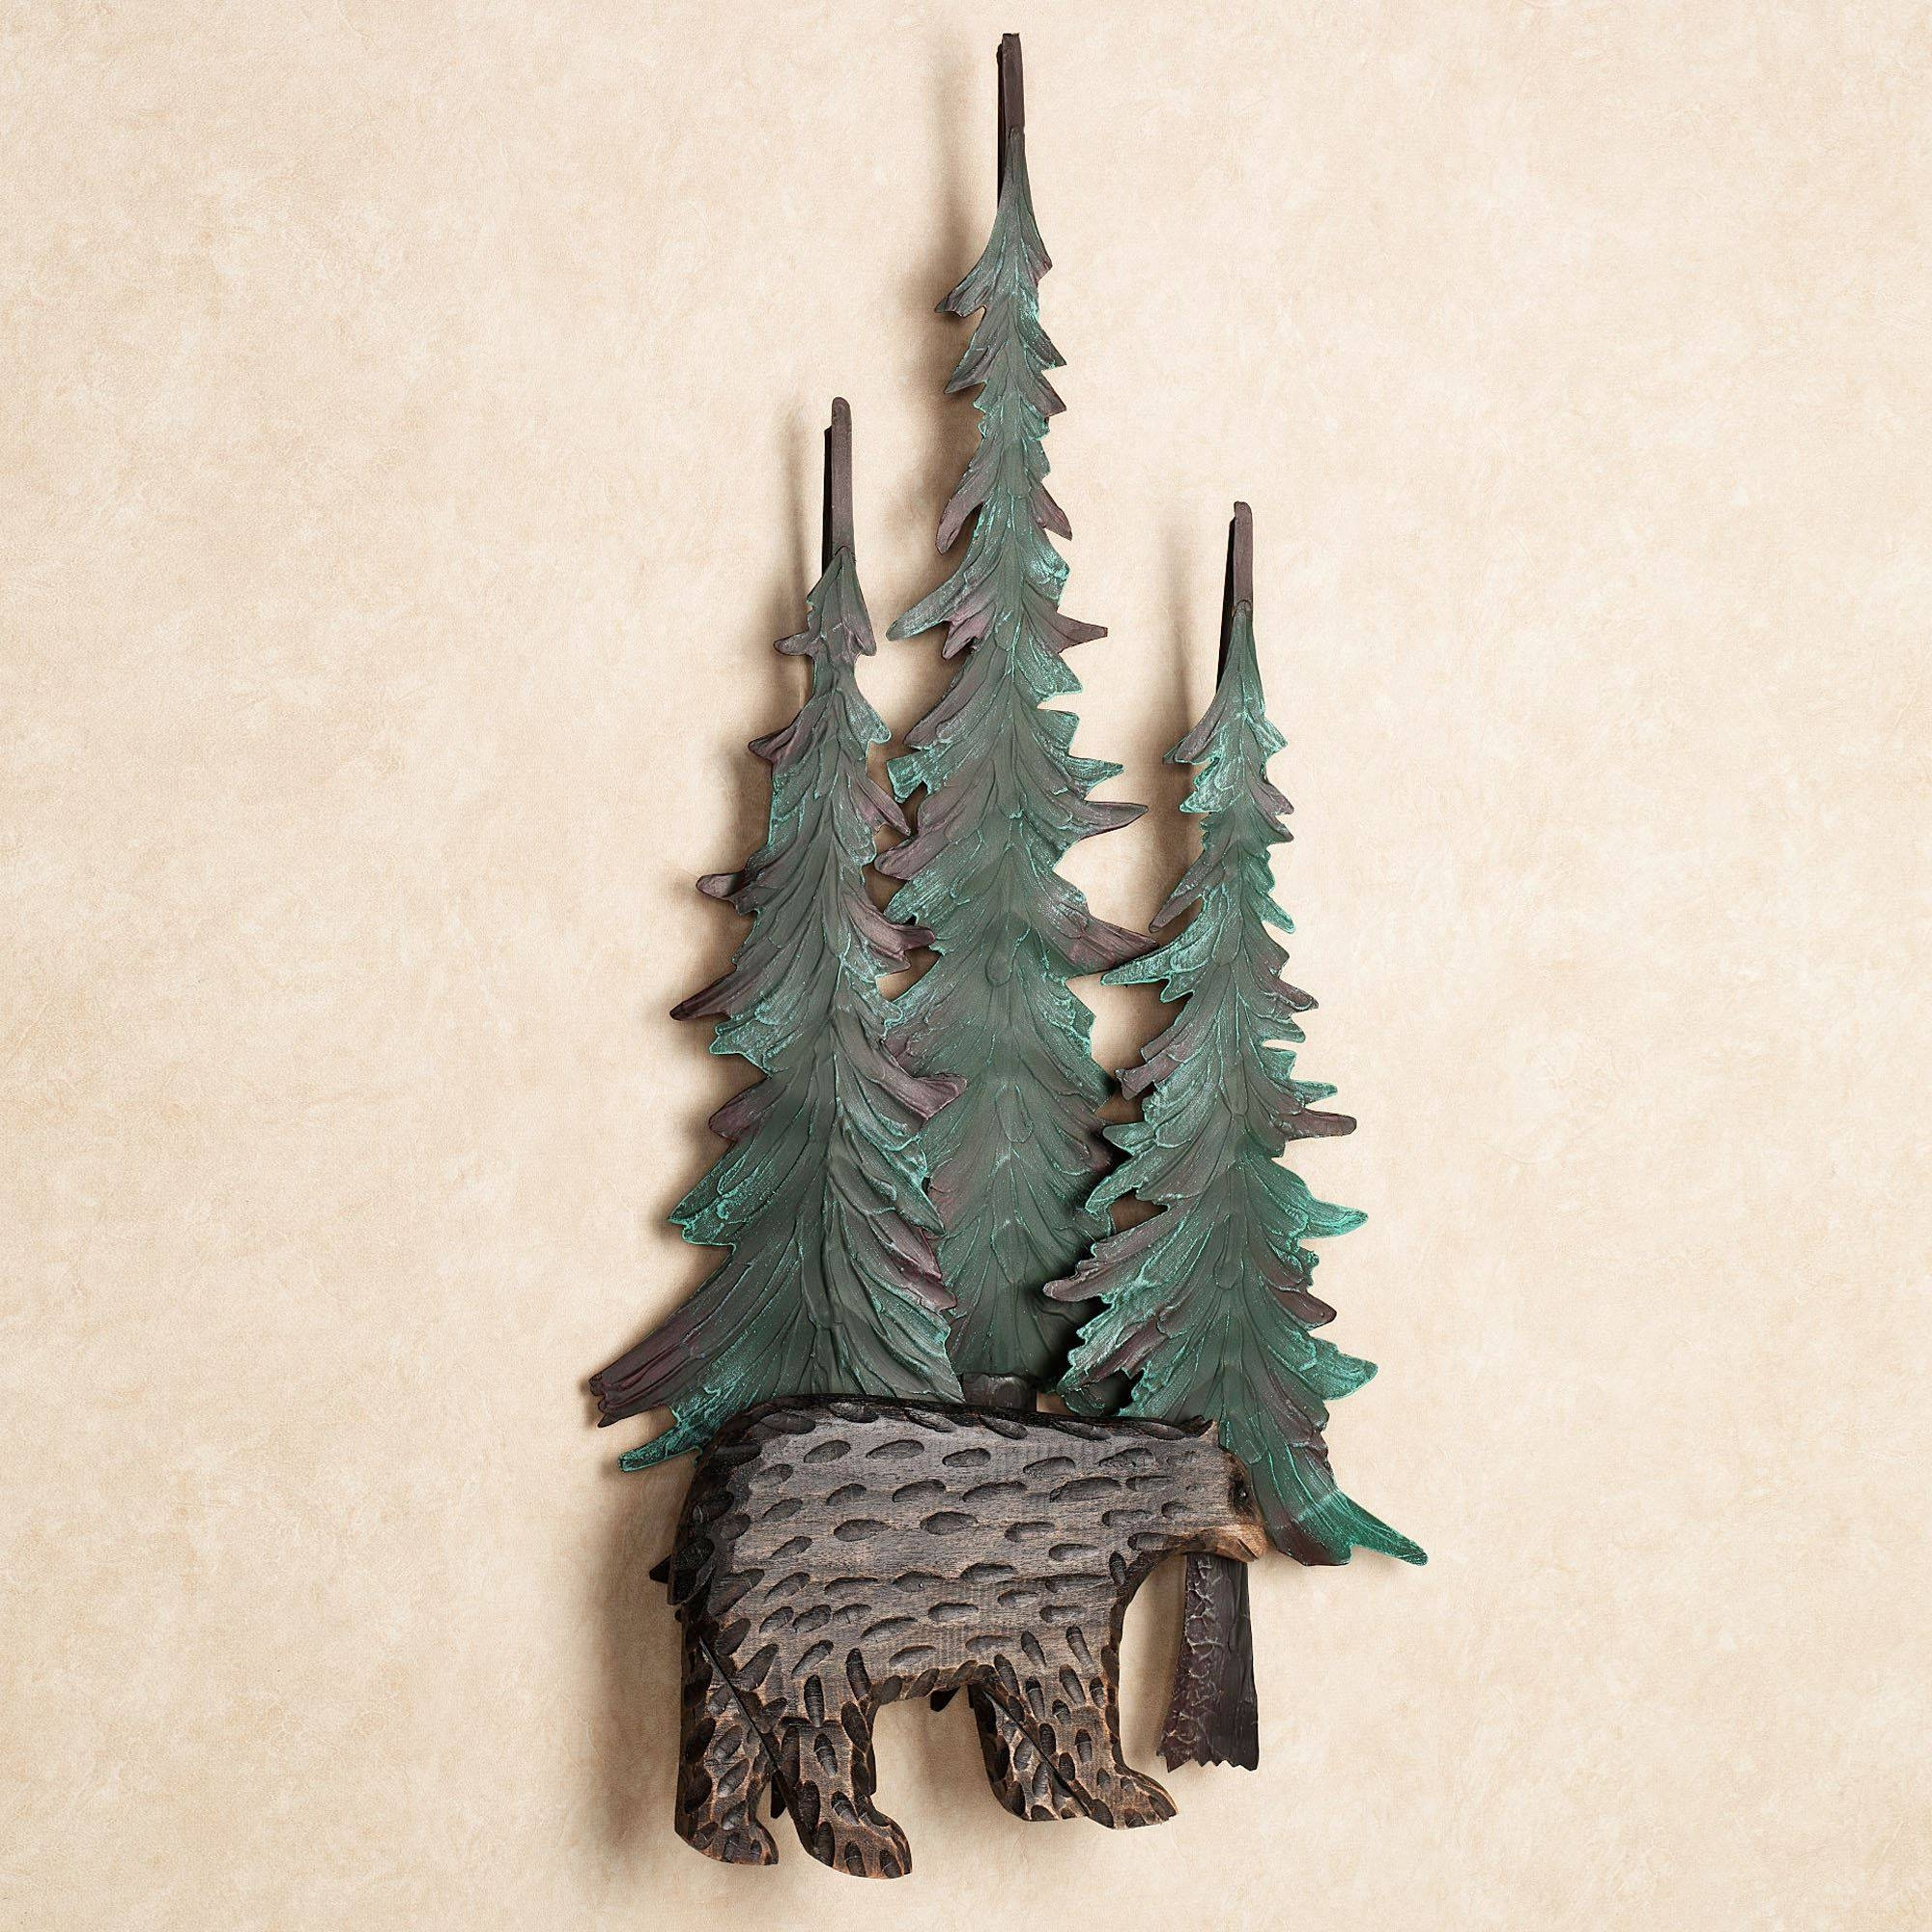 Black Bear In Pines Wall Art Intended For Most Popular Pine Tree Wall Art (View 10 of 30)